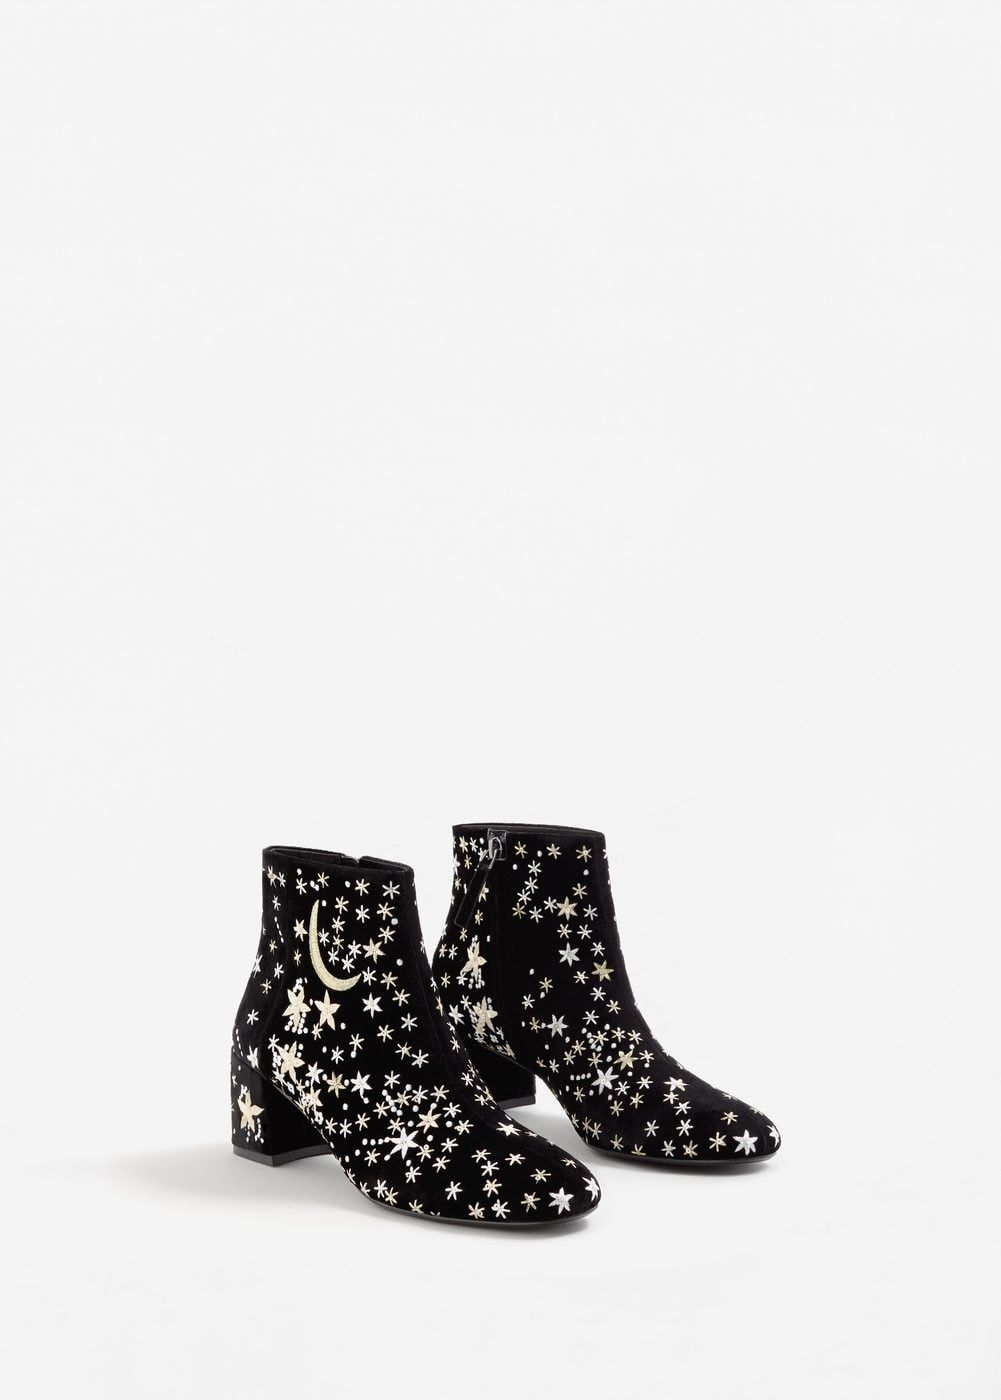 c3df19d0541e Stars embroidered ankle boots - f foBoots and booties Women